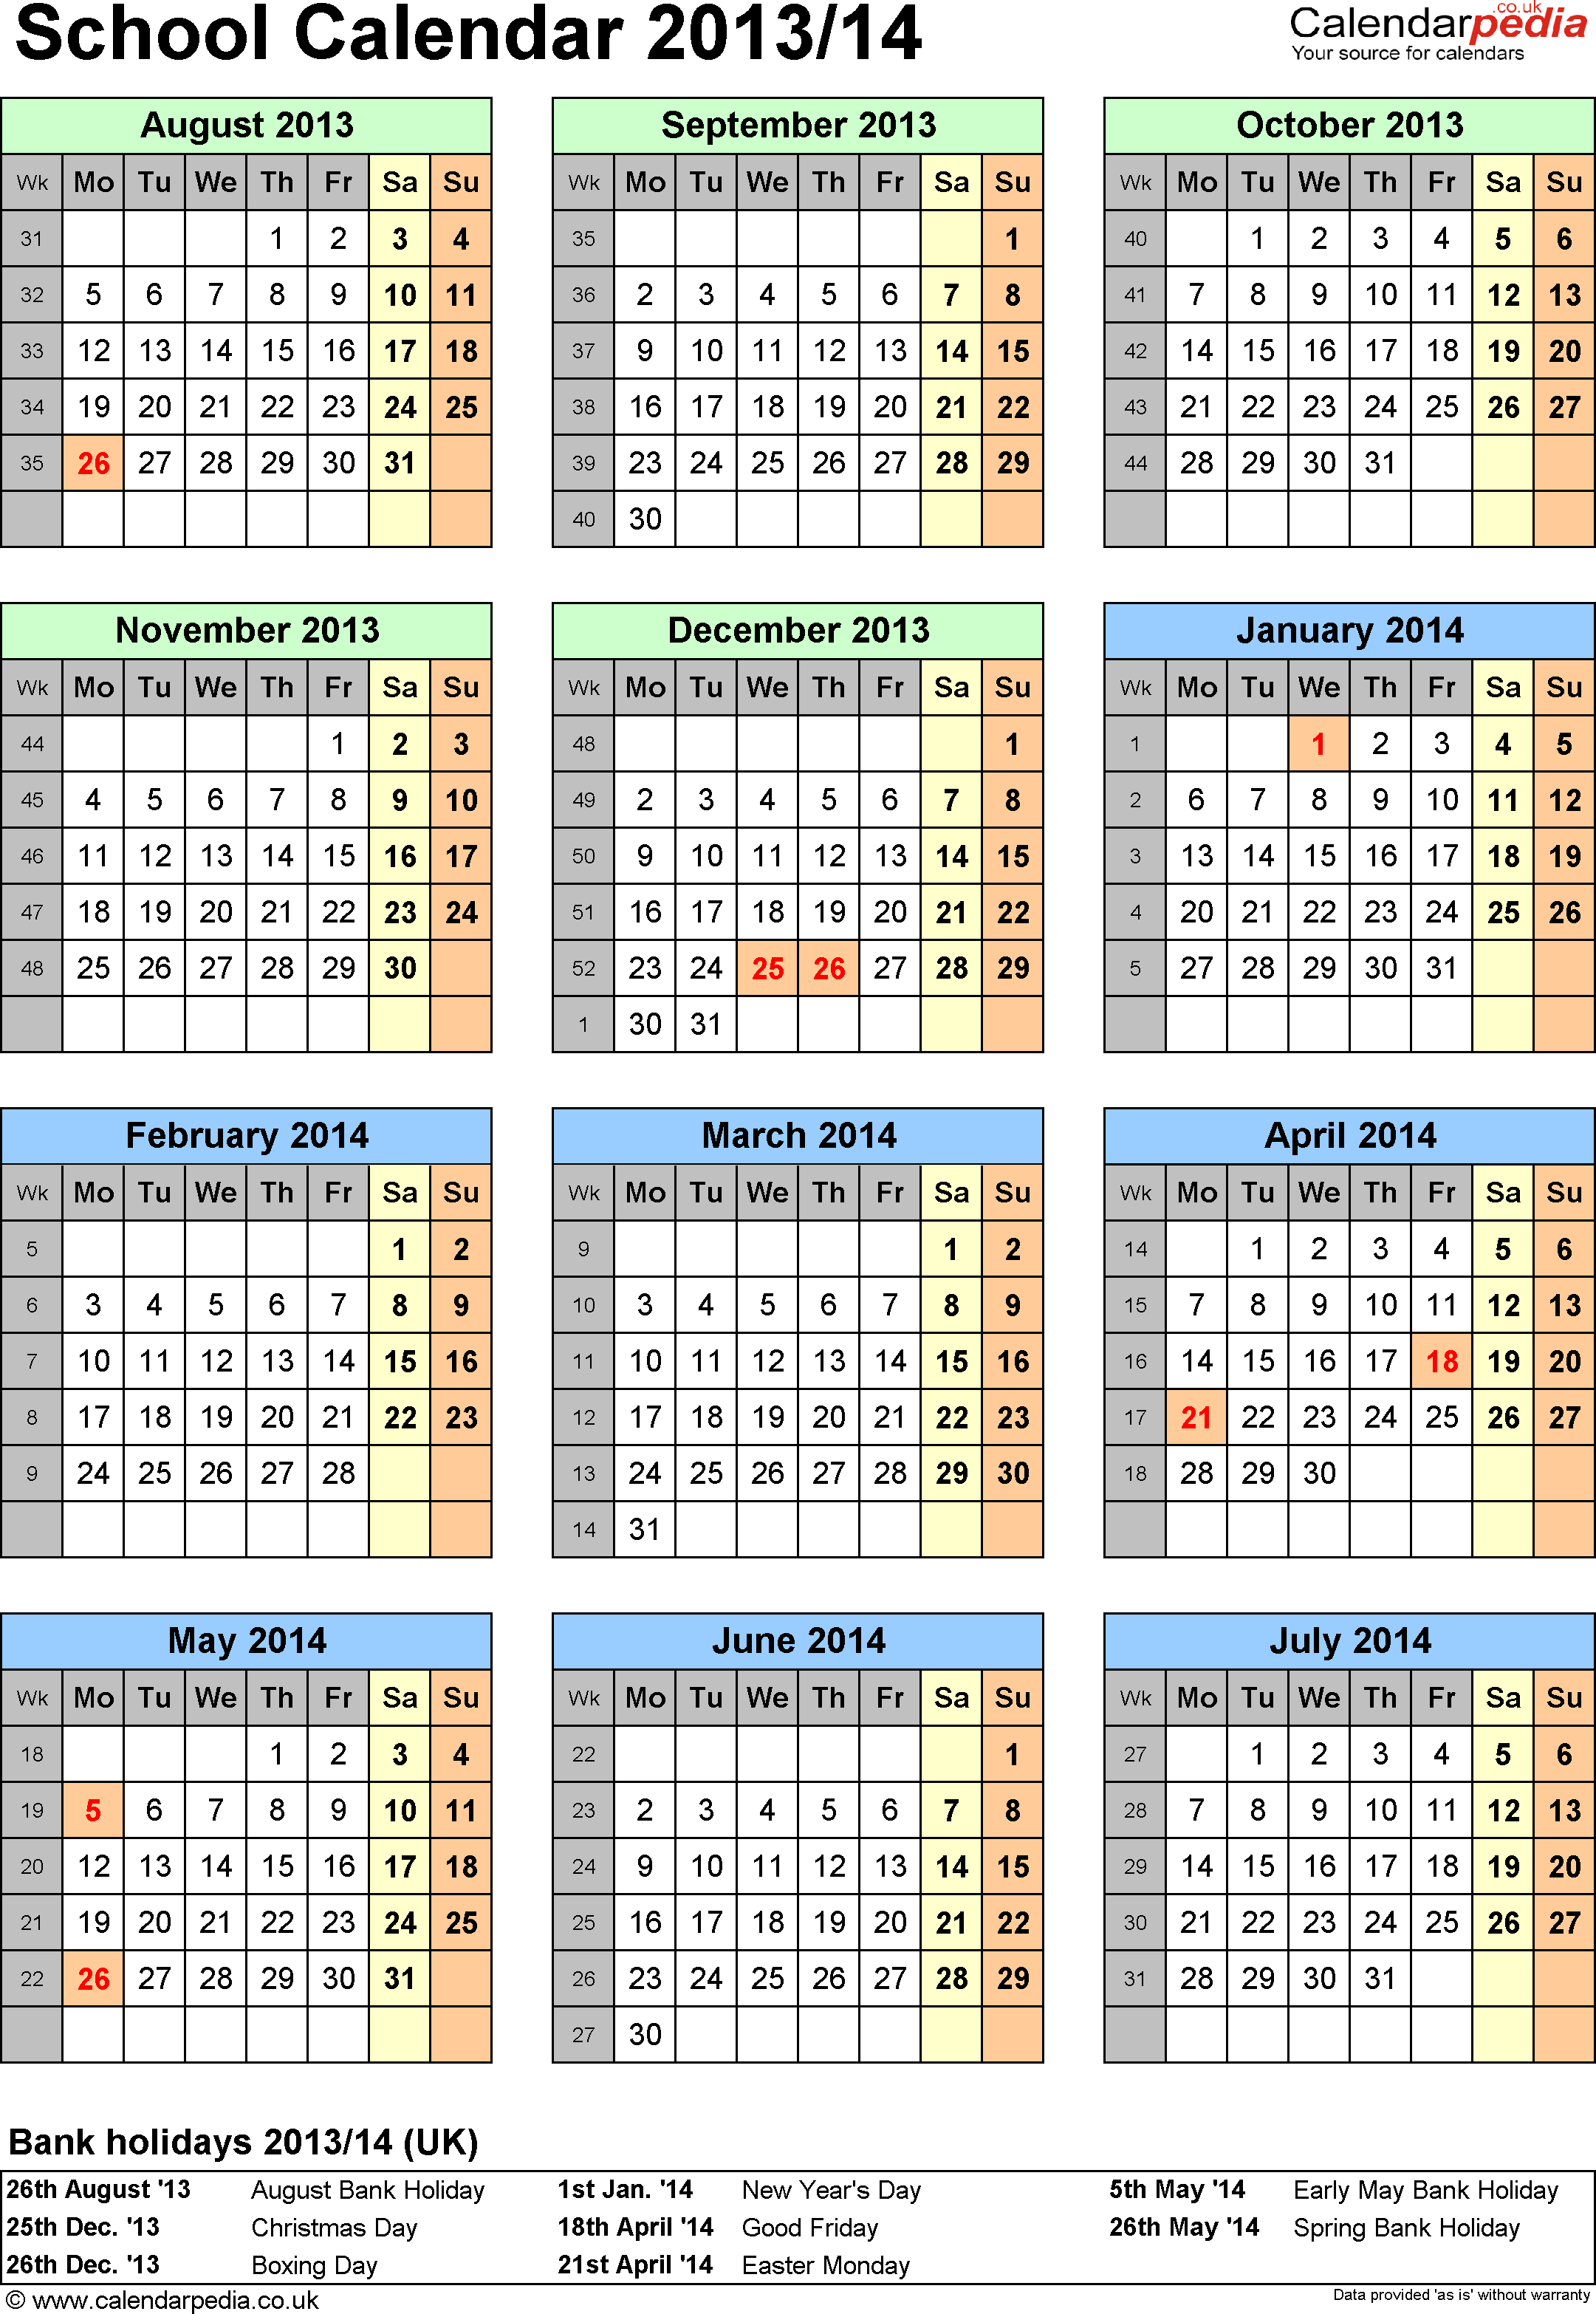 Download Template 6: School year calendars 2013/14 for Microsoft Excel, portrait orientation, one A4 page